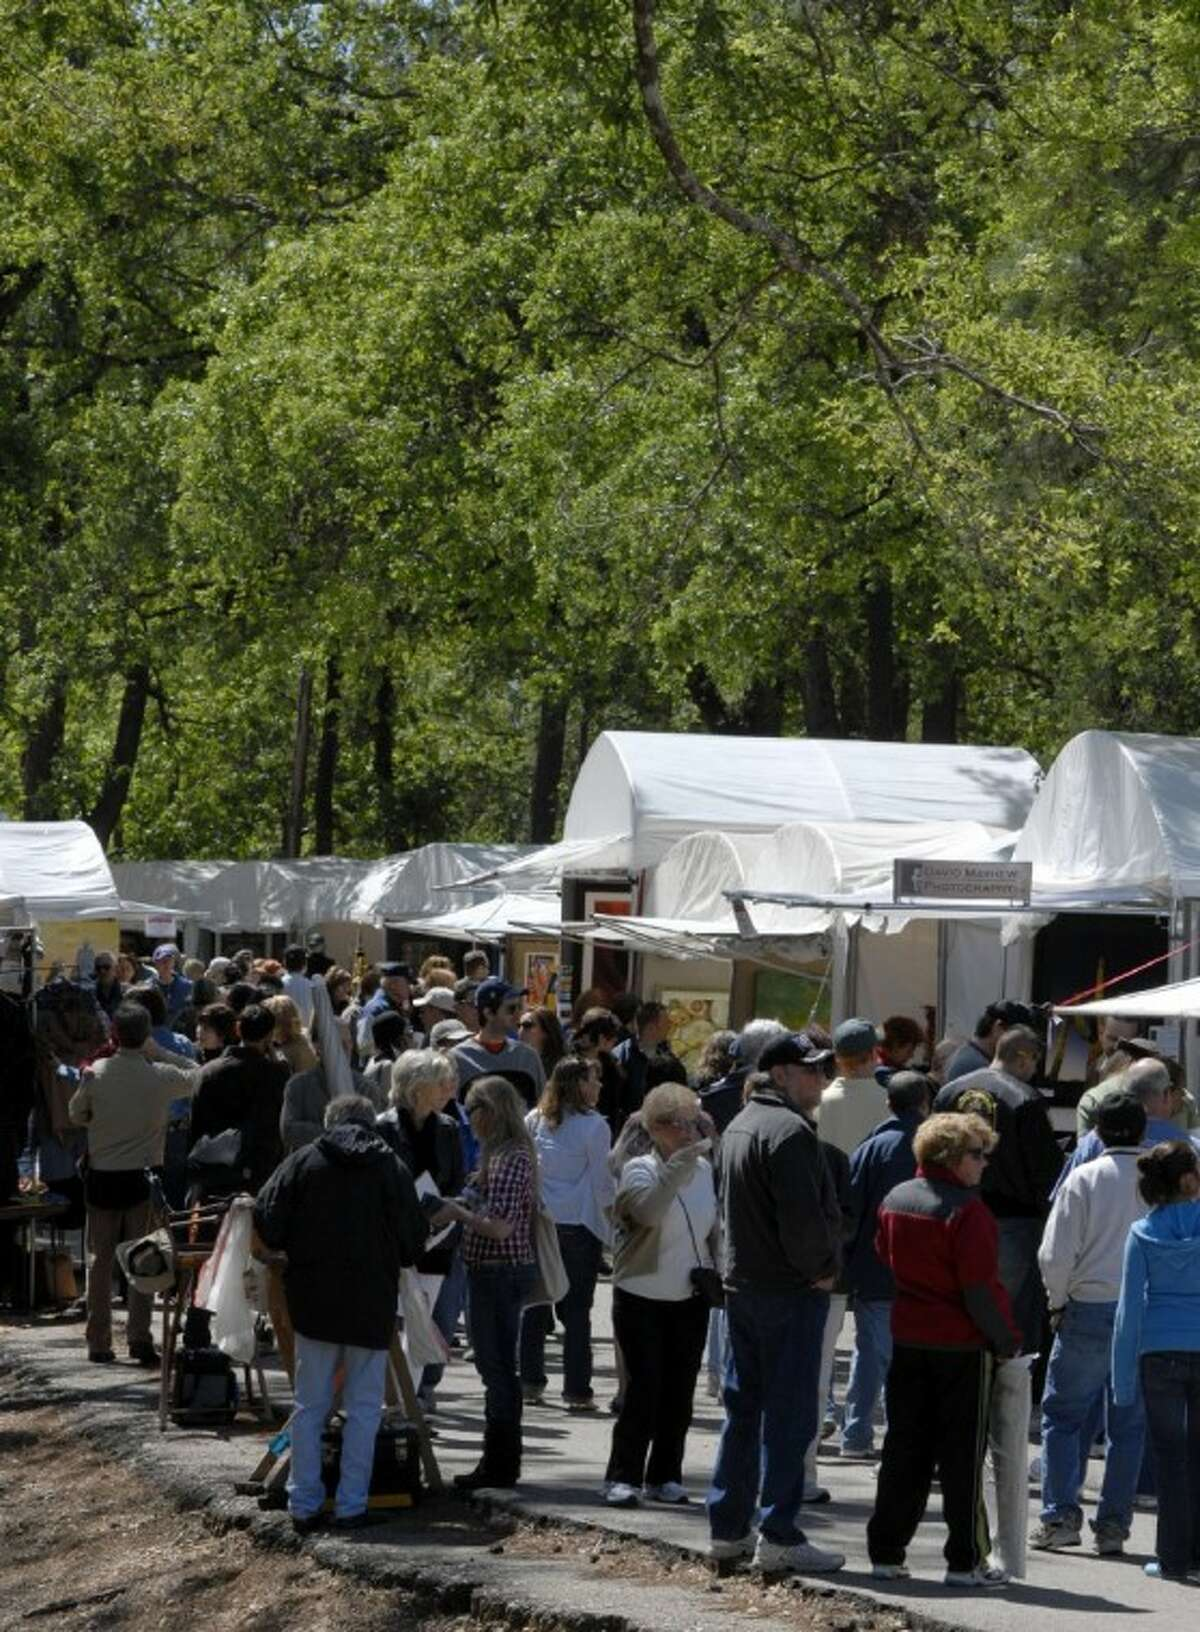 Crowd shot from last year's Bayou City Art Festival Memorial Park. (Photo submitted by Bayou City Art Festival)